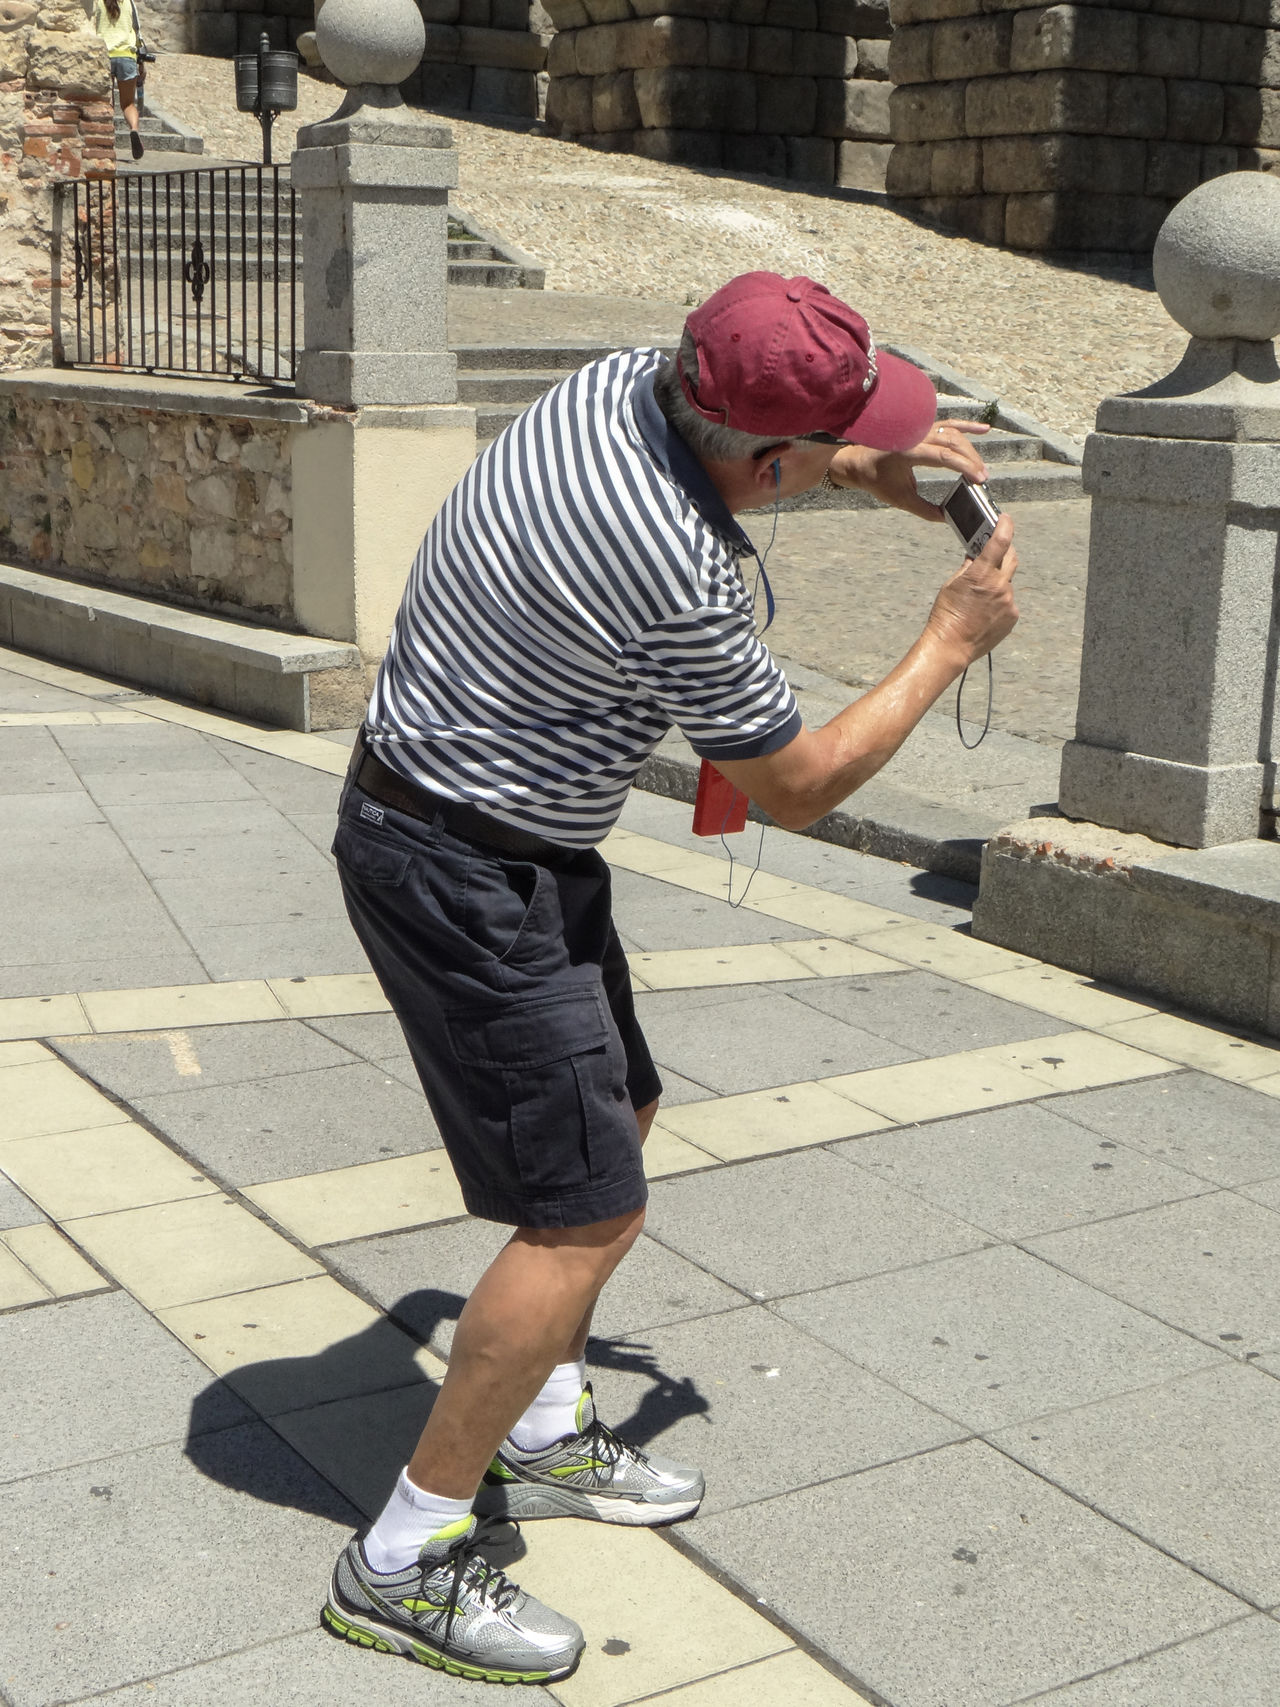 Casual Clothing Historical Sights Man Taking Photo Photography Segovia Sightseeing The Tourist Tourism